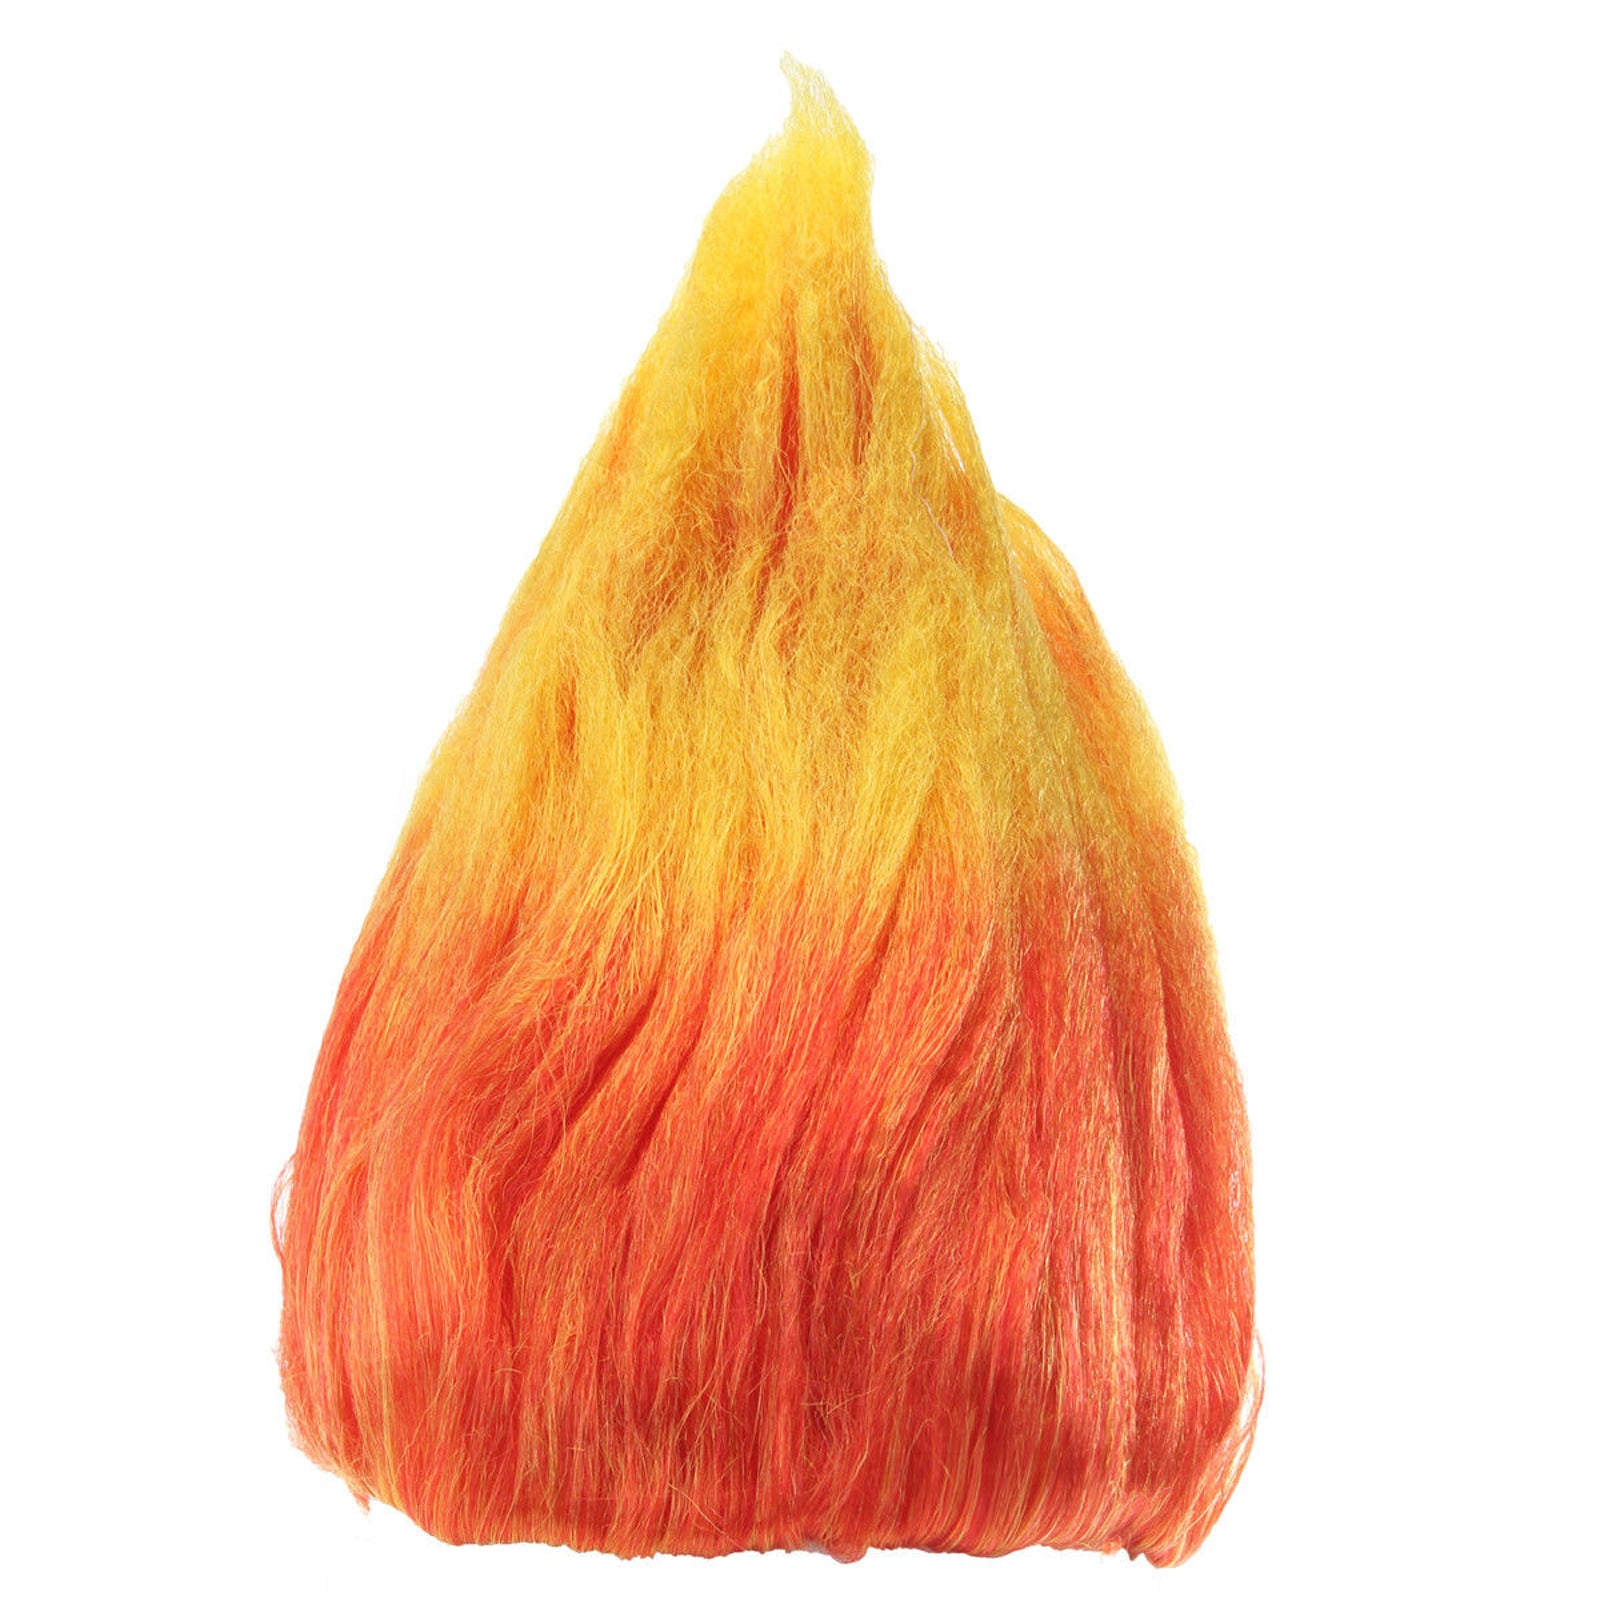 Colourful Adult Elf Troll Pixie Flame Fire Halloween Party Cosplay Fake Hair Wig